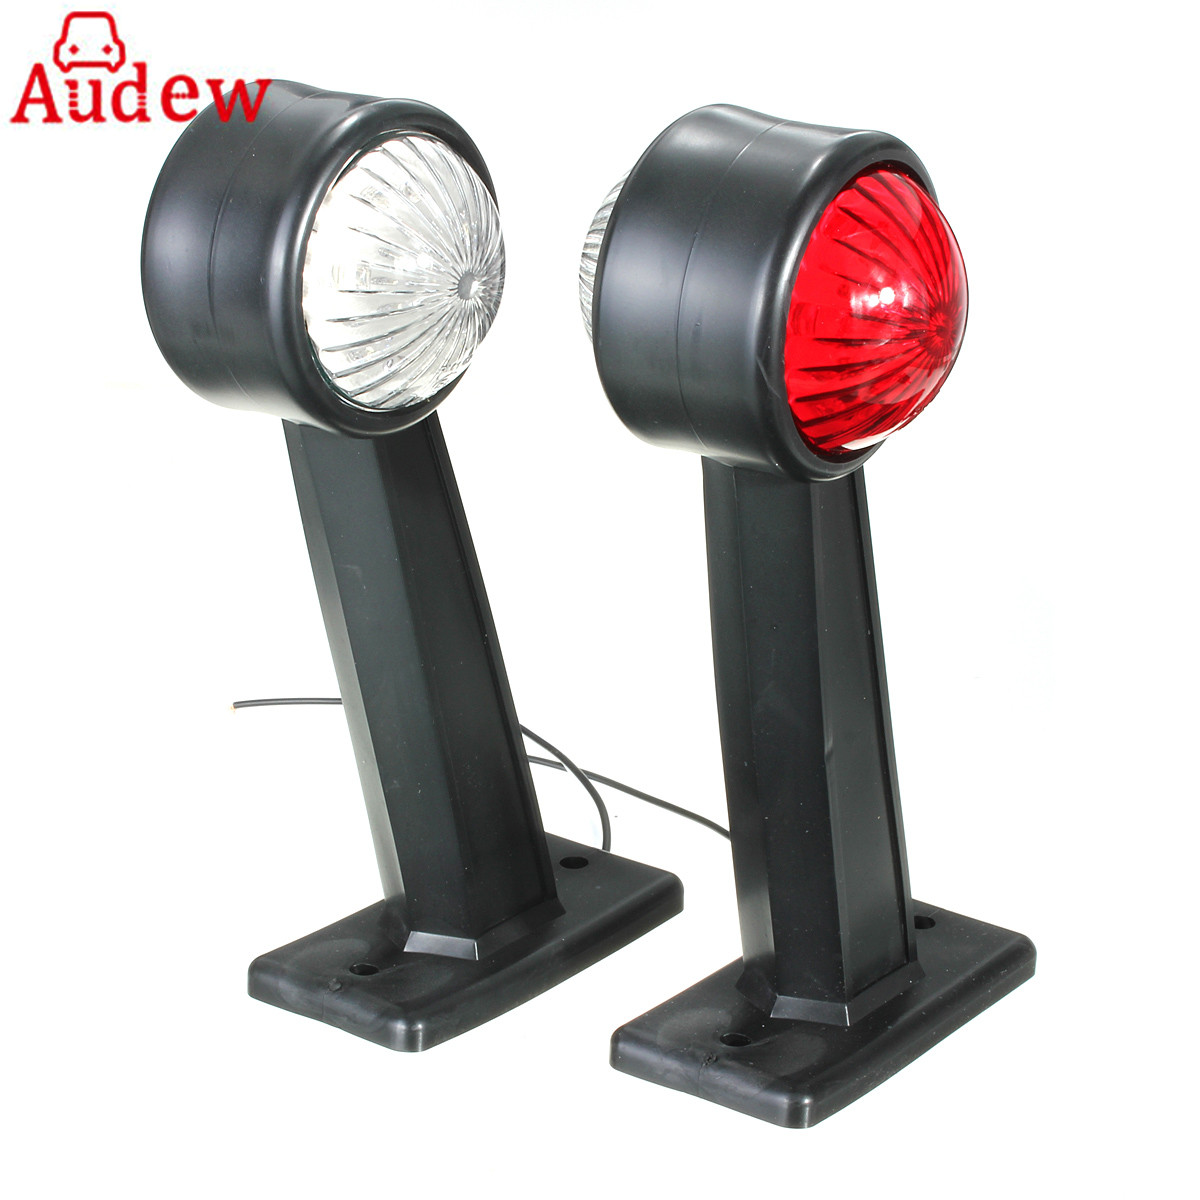 12/24V 12LED Side Marker Lights Lamp Tail Warning Lihgt Double Color White&Red For Car Trailer Truck Lordy car suv truck 12led side emergency